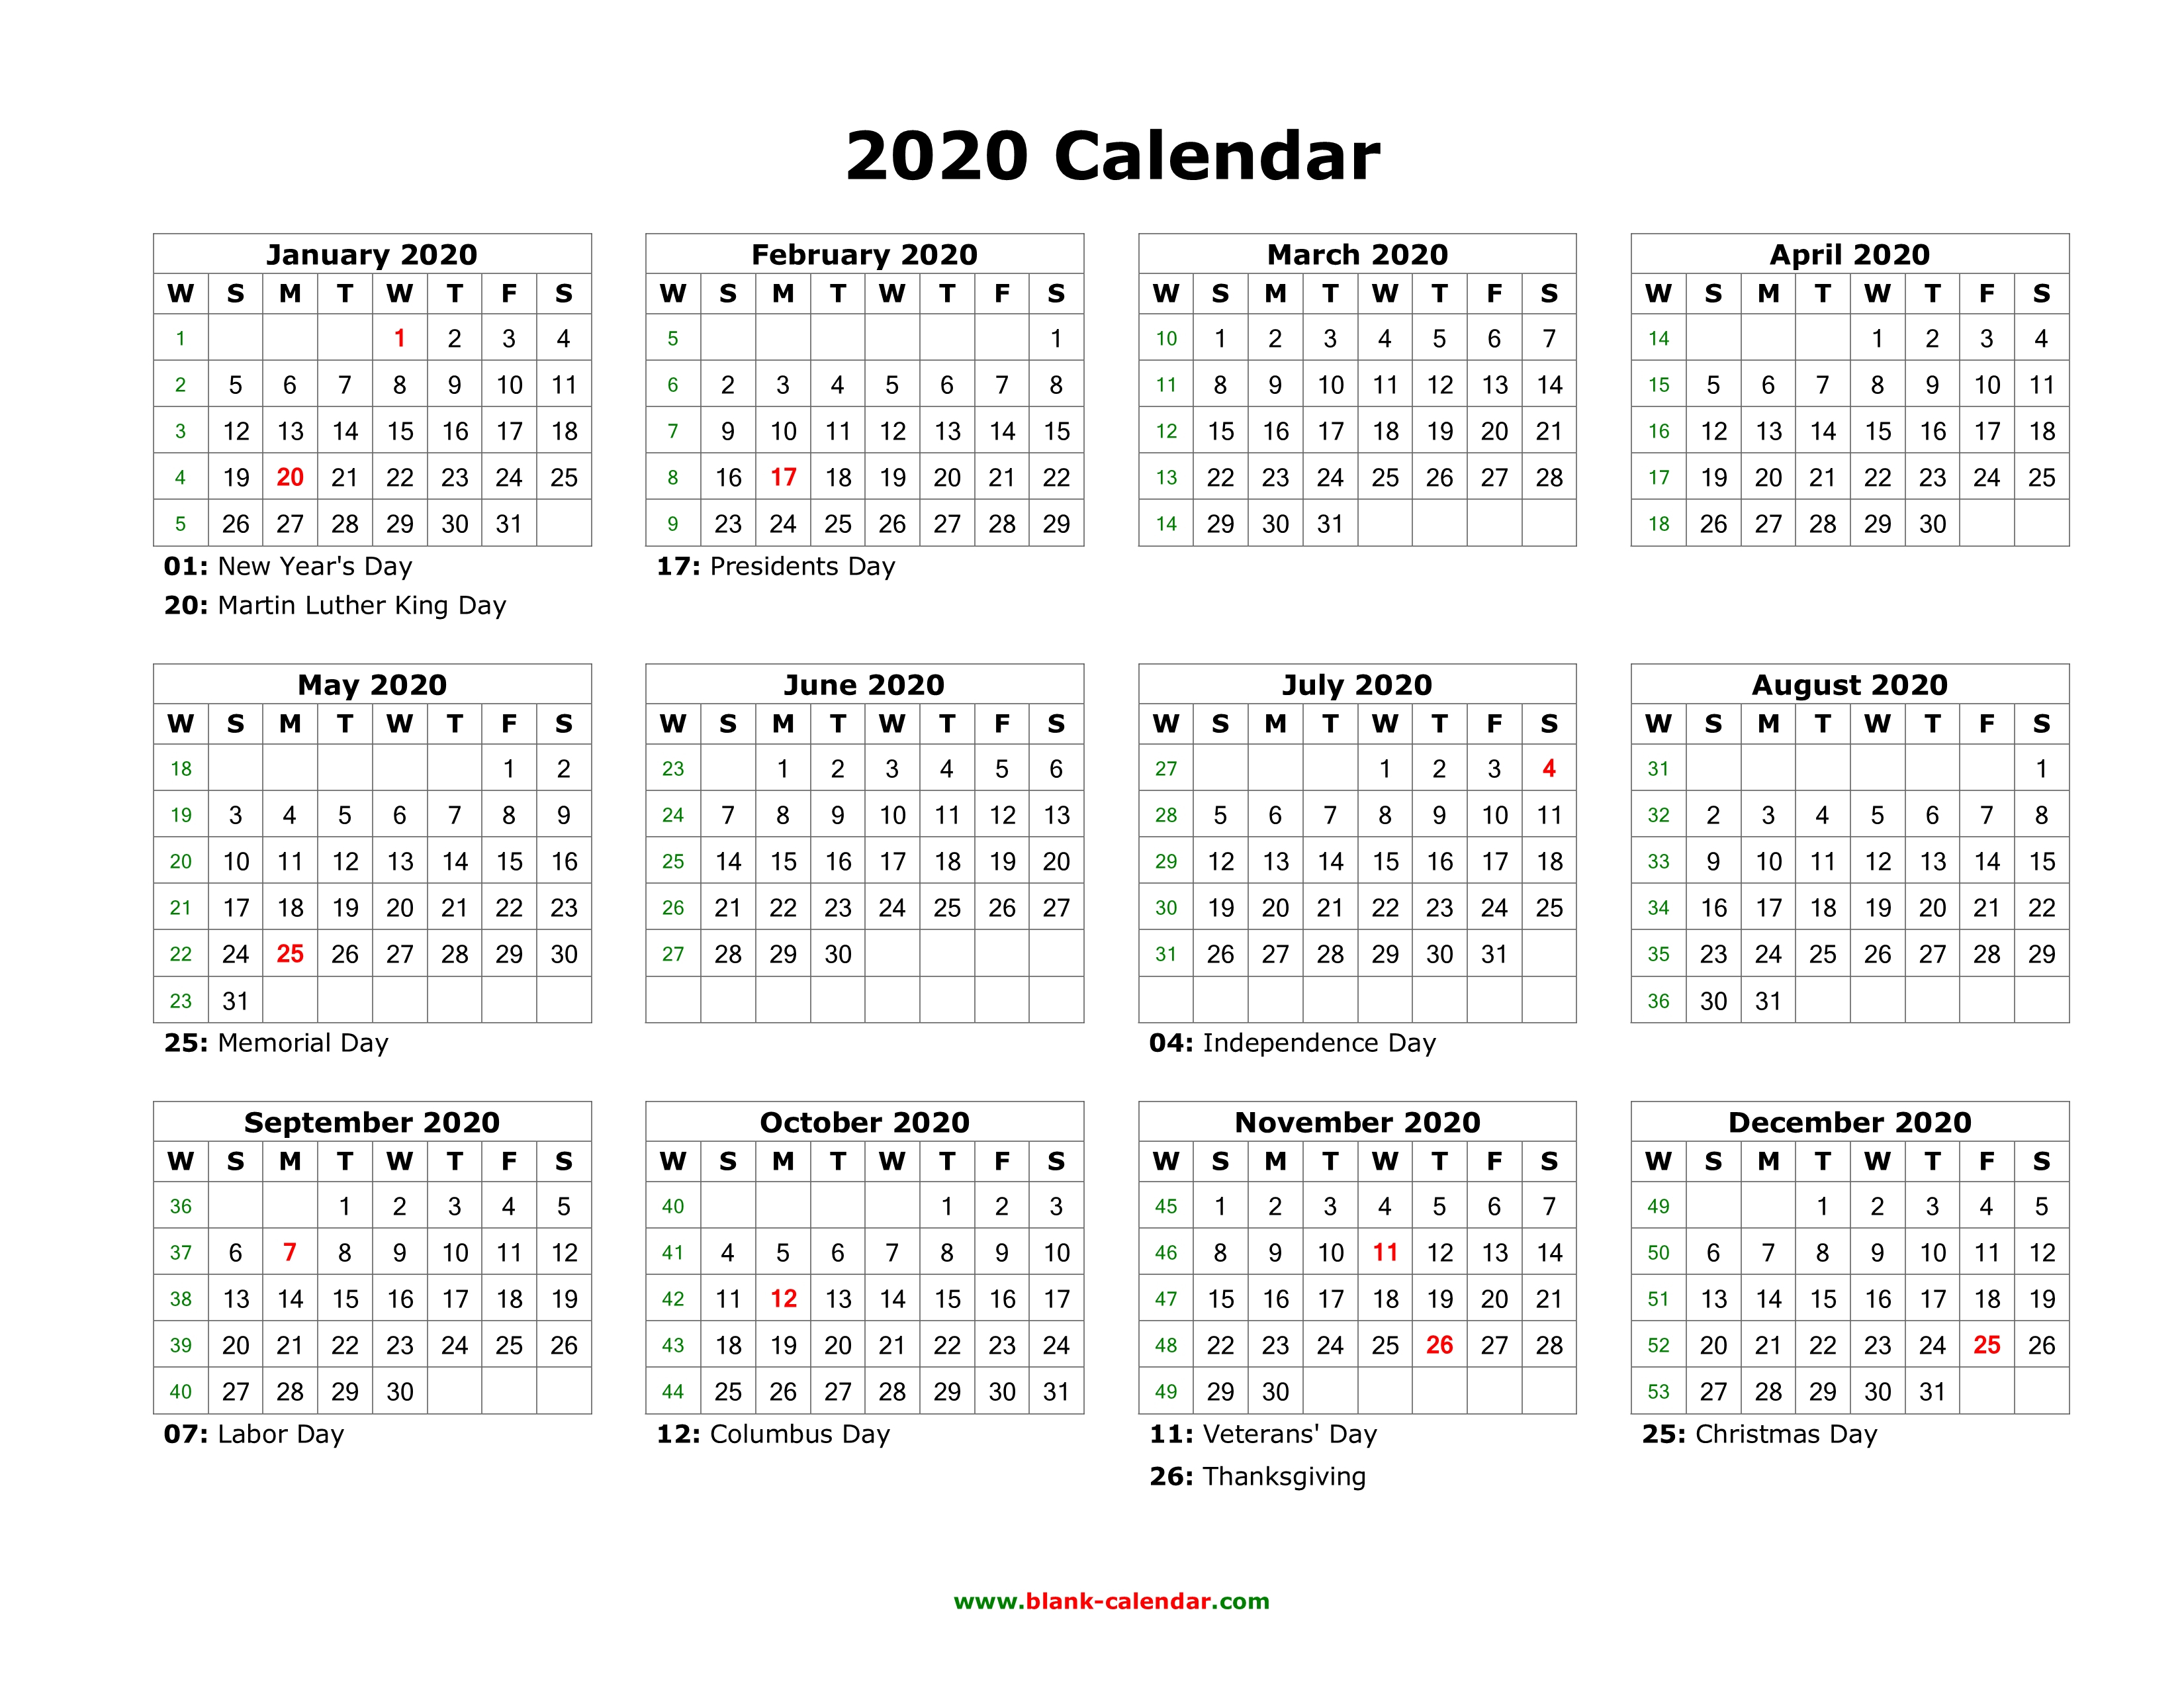 Blank Calendar 2020 | Free Download Calendar Templates